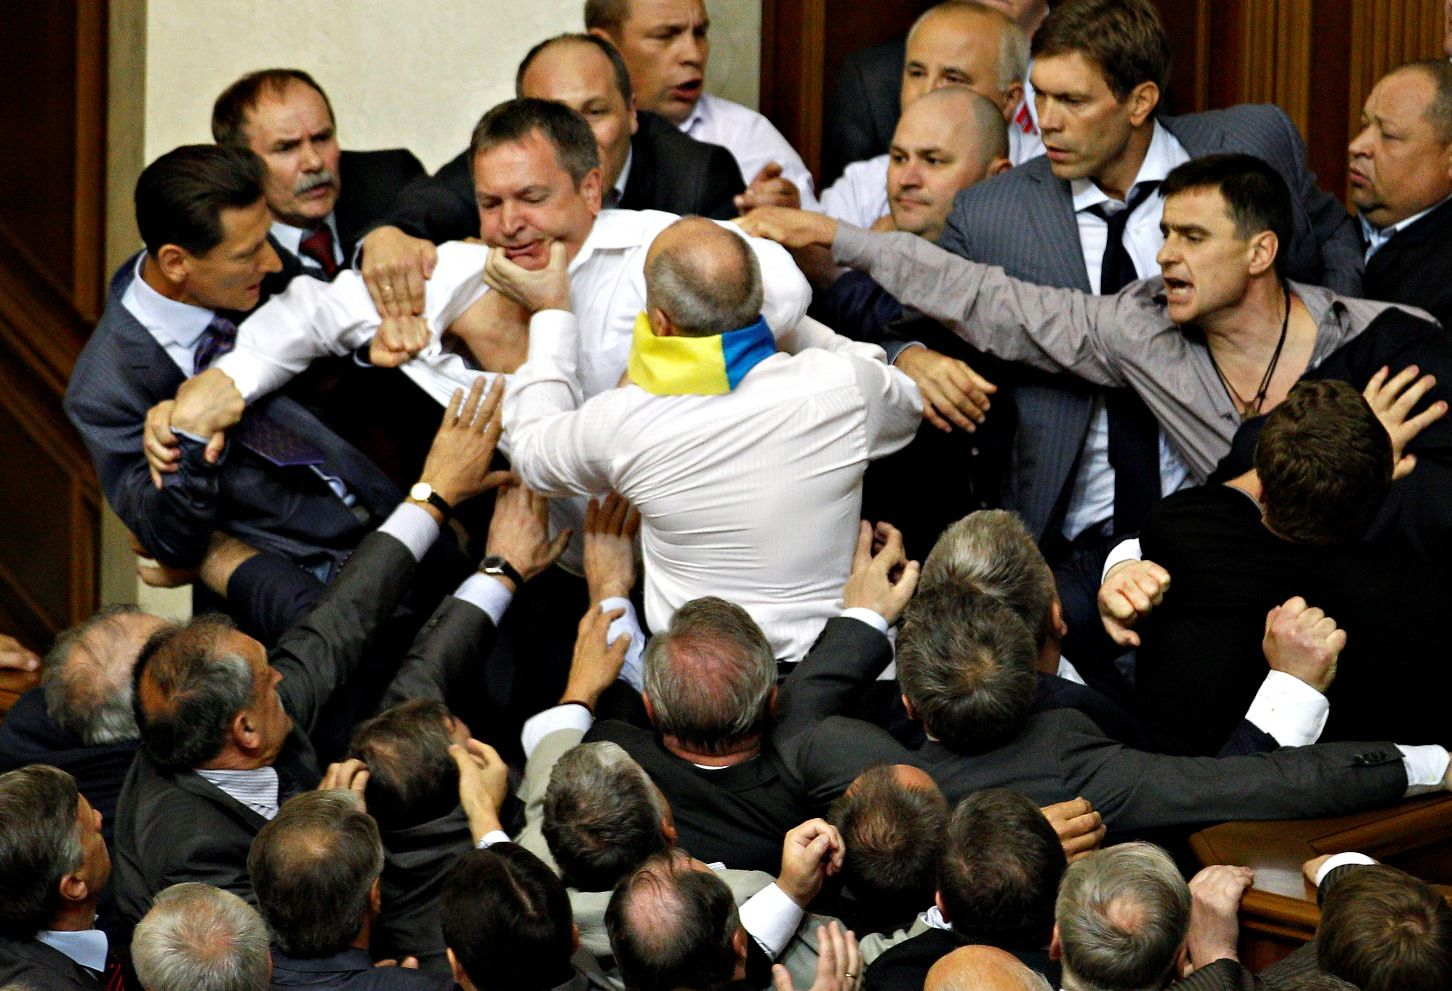 The likely future policies of the new Ukrainian parliament